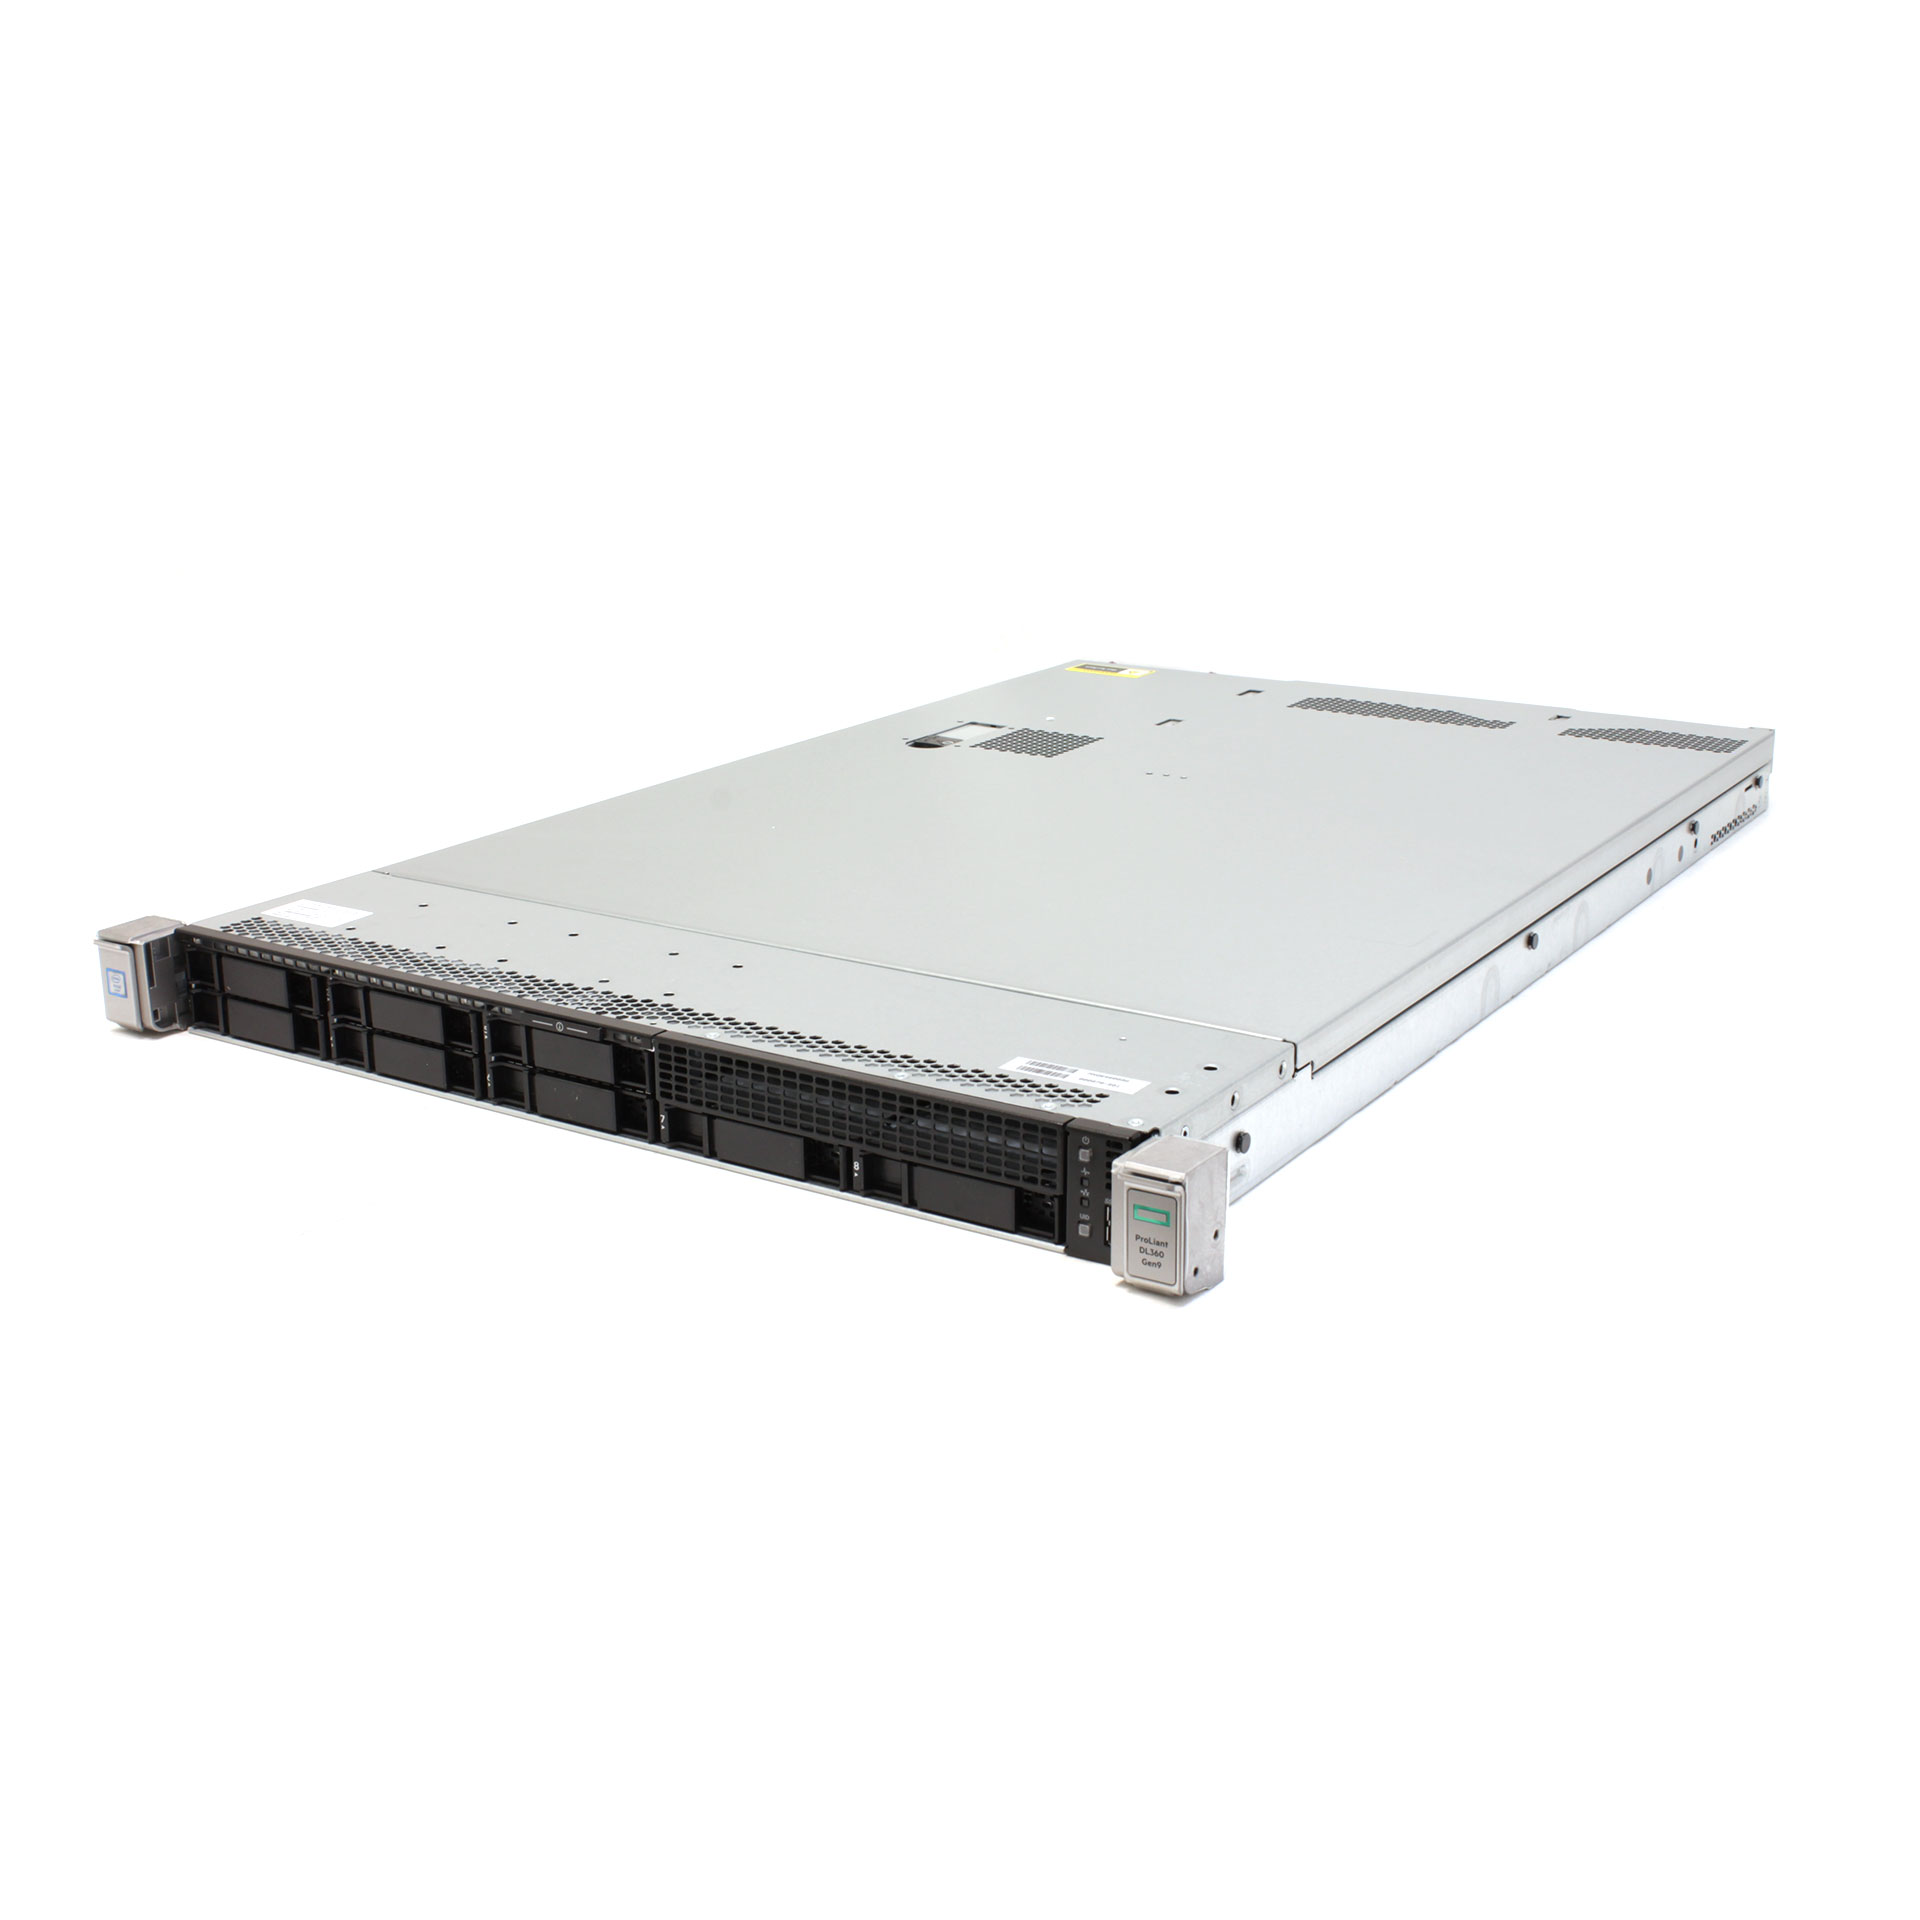 HPE SB ProLiant DL360 Gen9 Xeon E5-2620V3 16GB Server 800079-S01